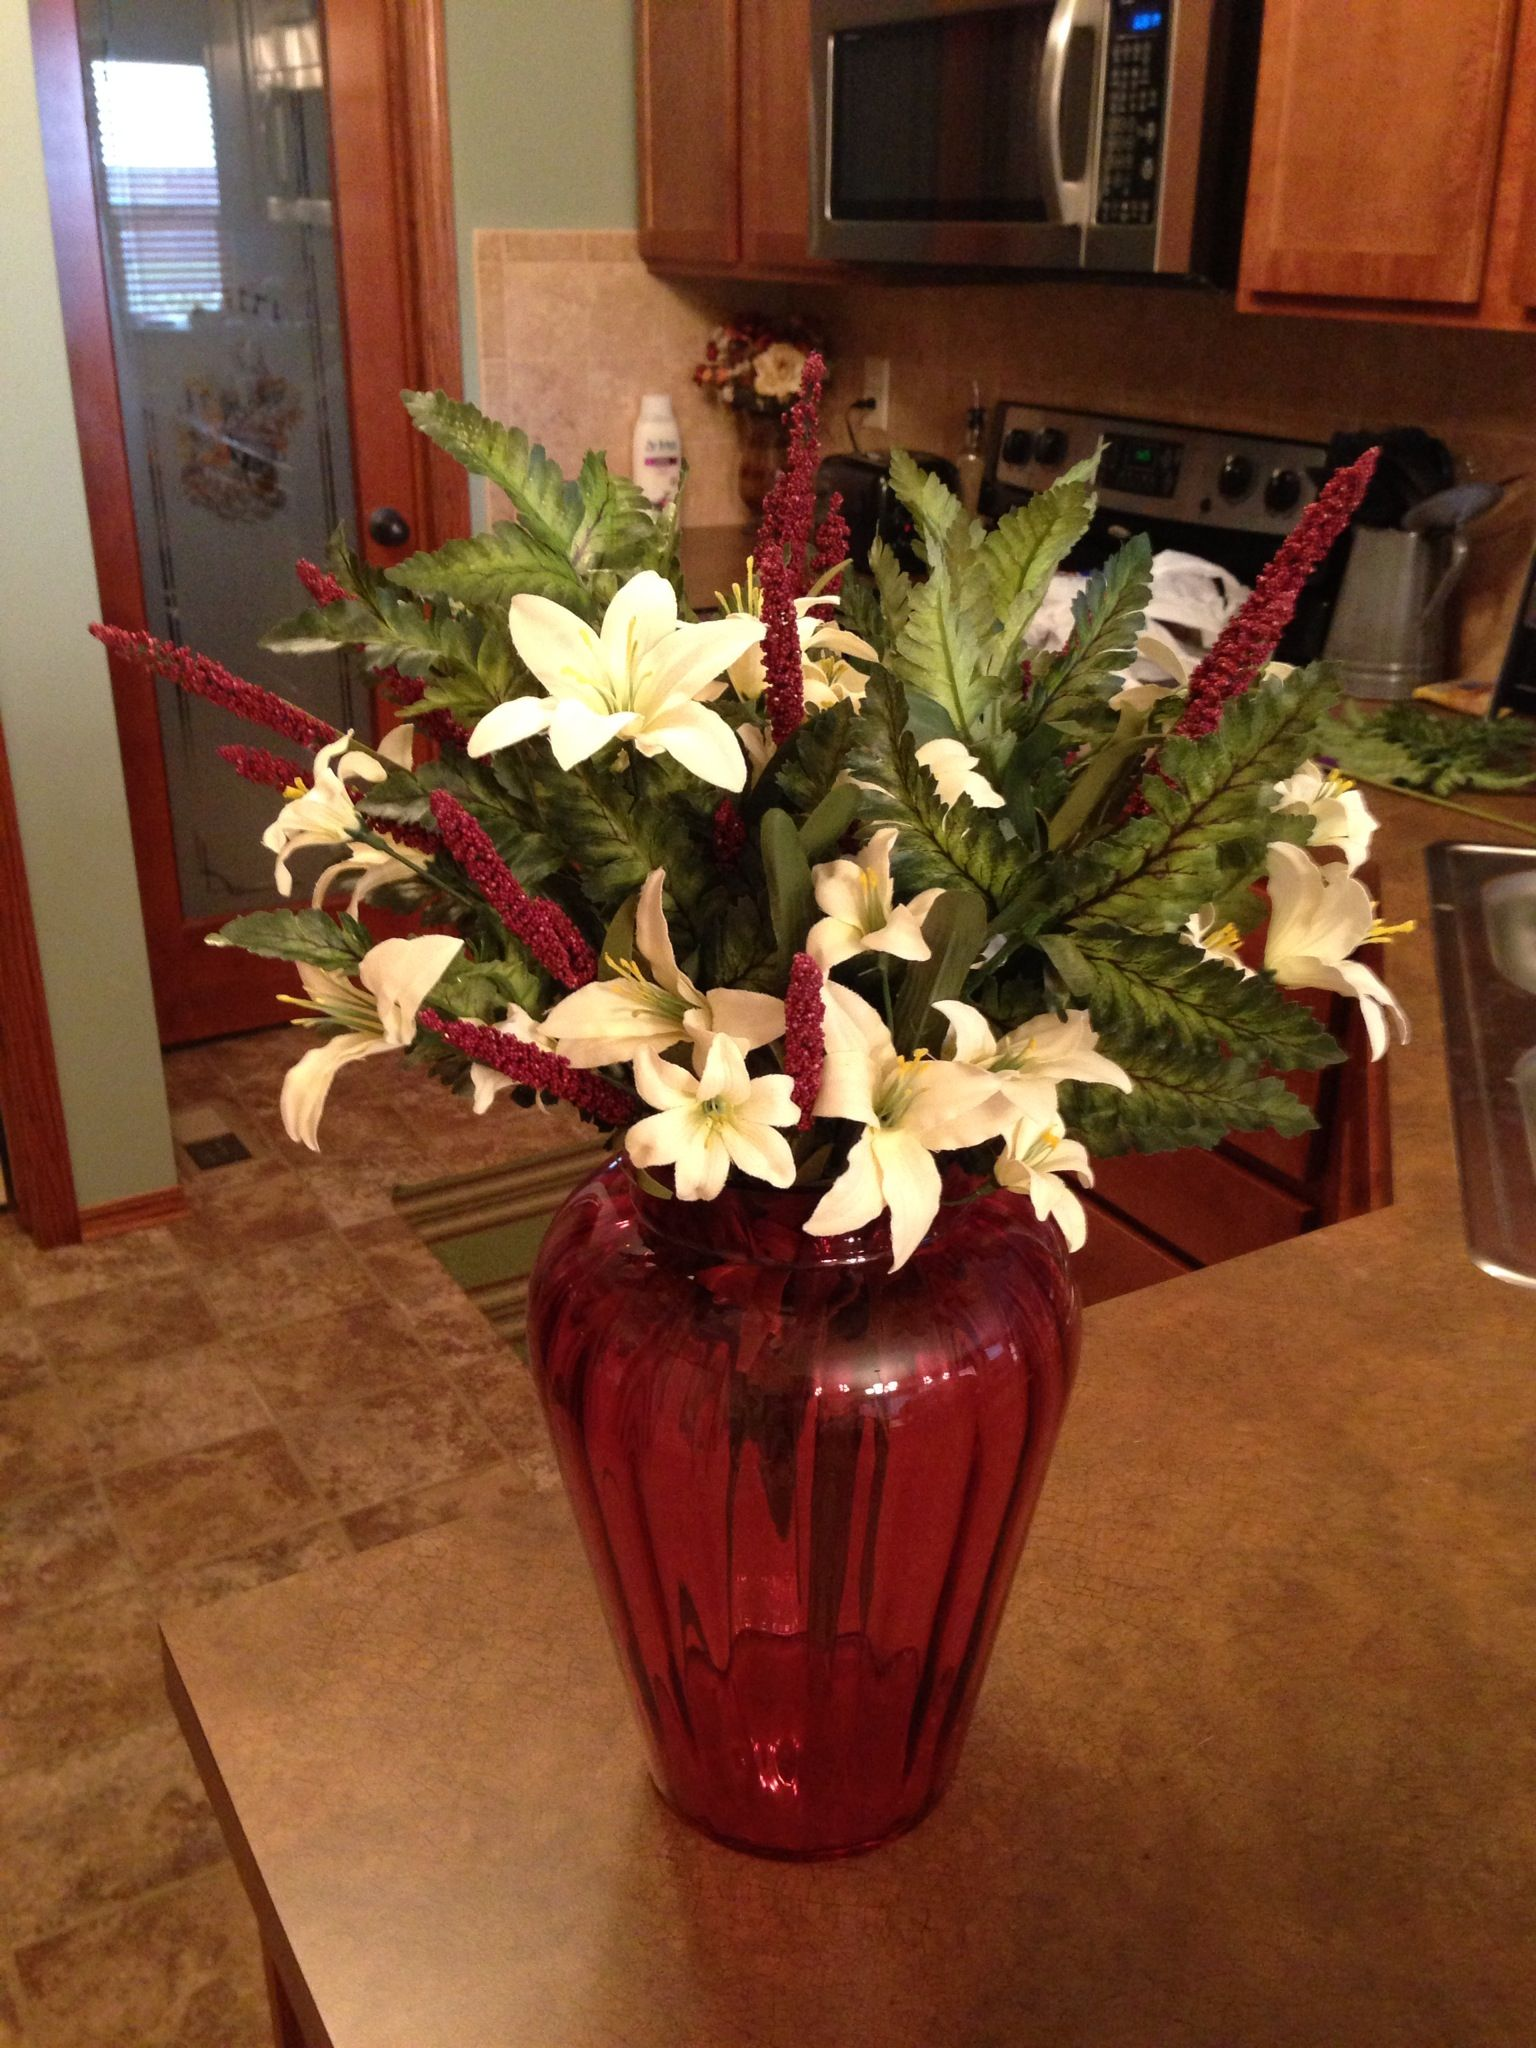 Pin by Kristi Mies on For the home Floral arrangements